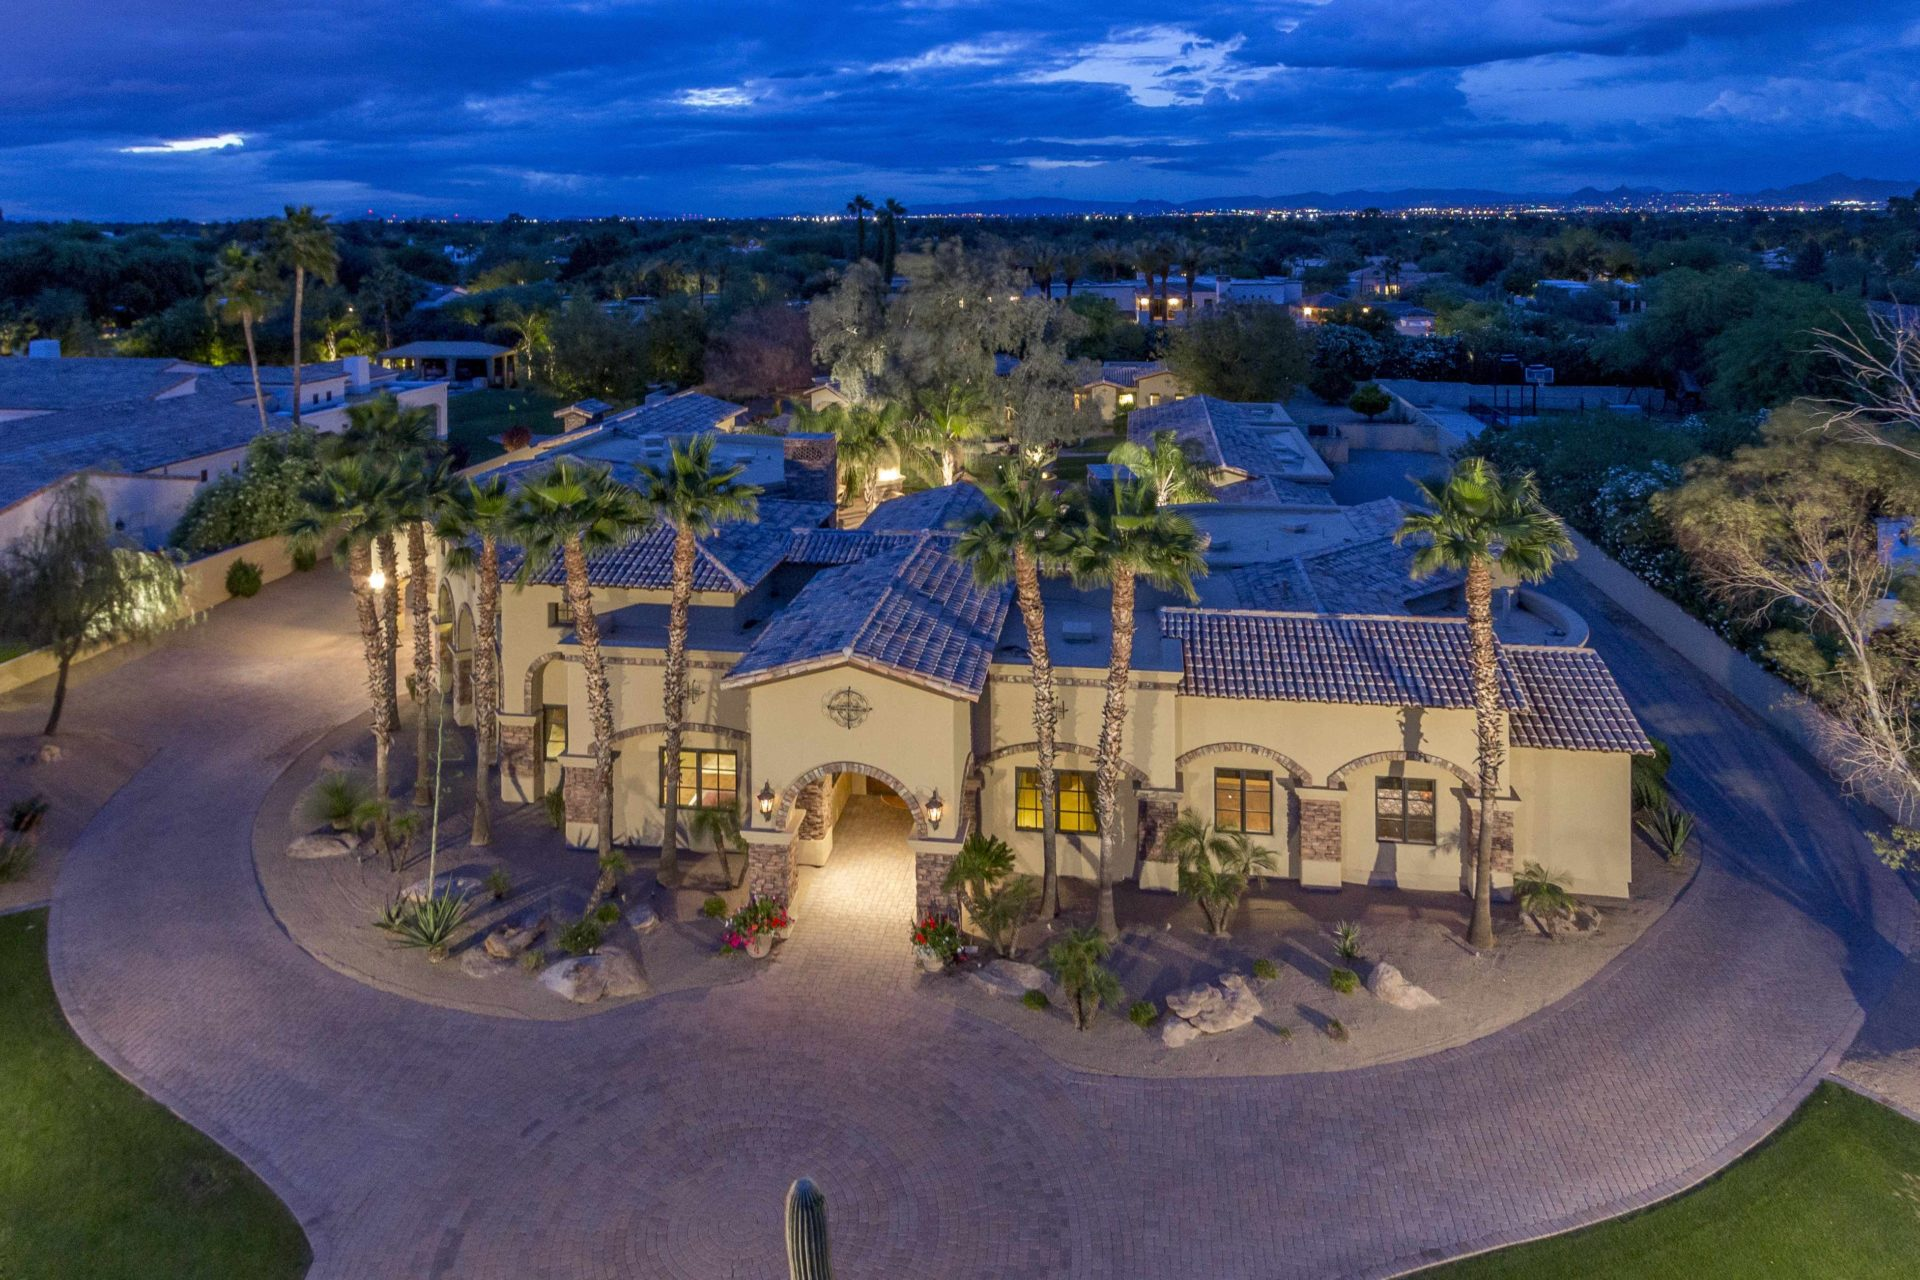 Vacation Home For Sale In Paradise Valley